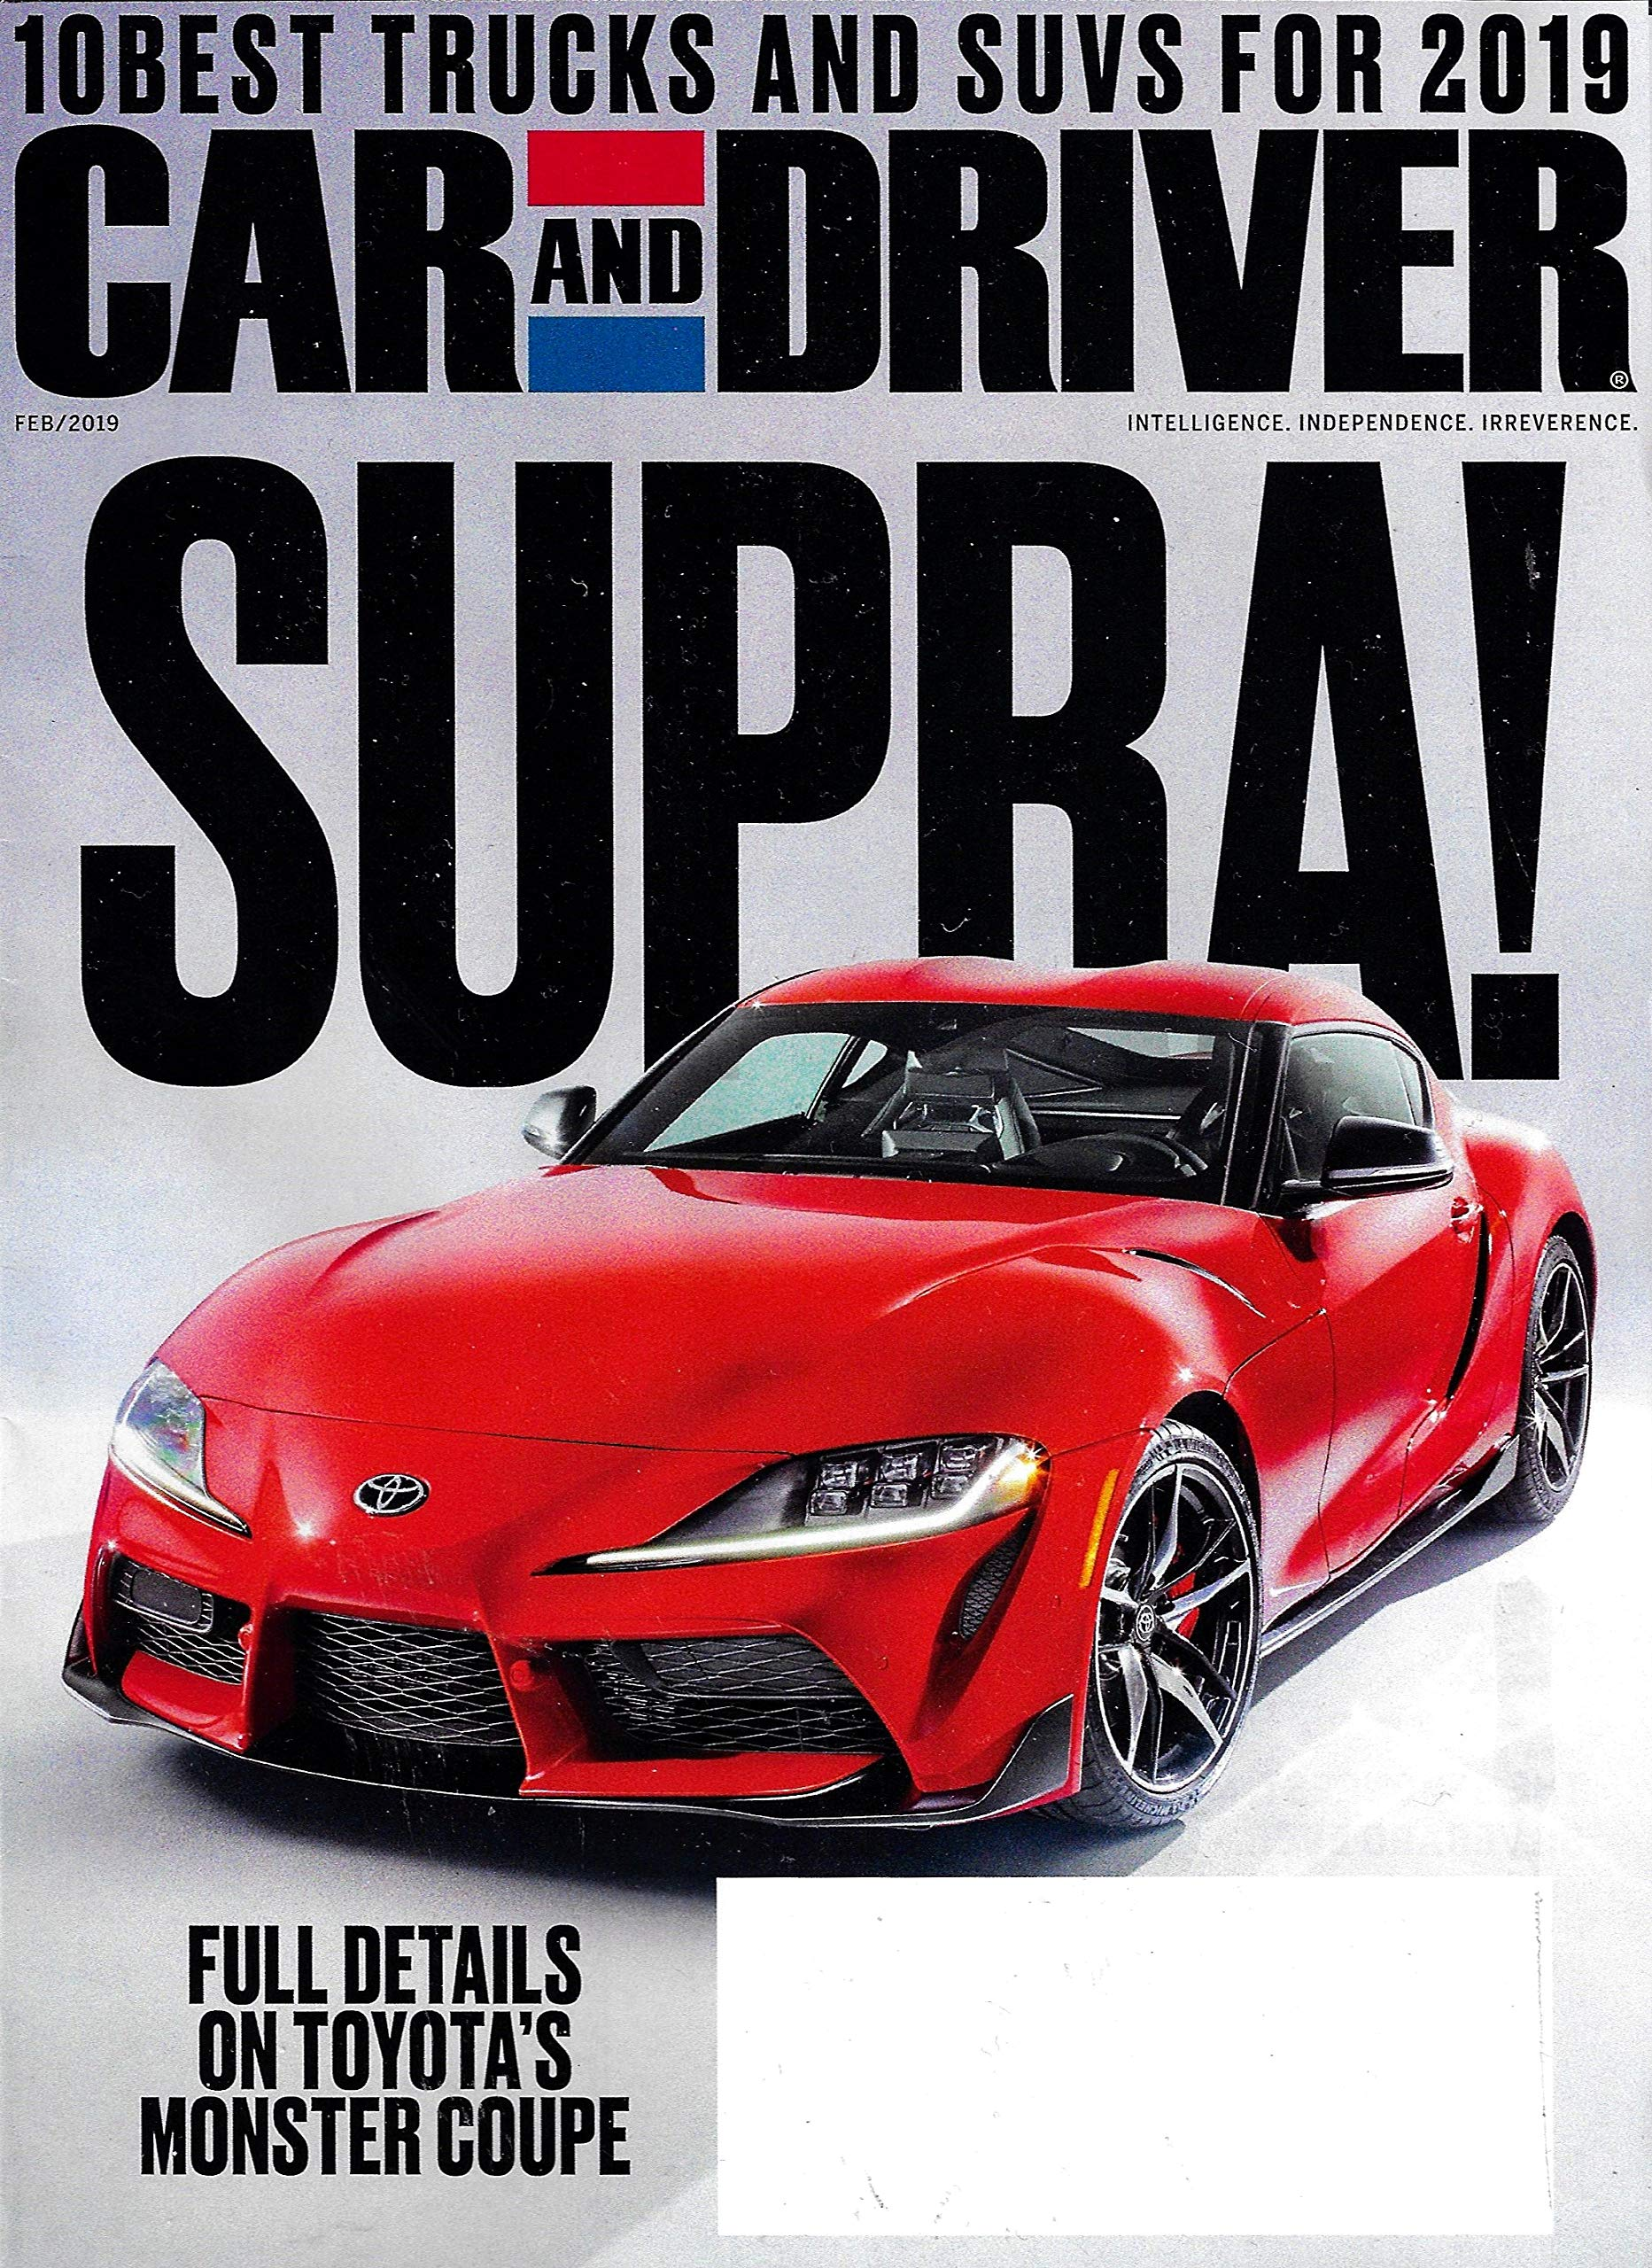 Car And Driver Magazine February 2019 Supra Toyota S Monster Coupe